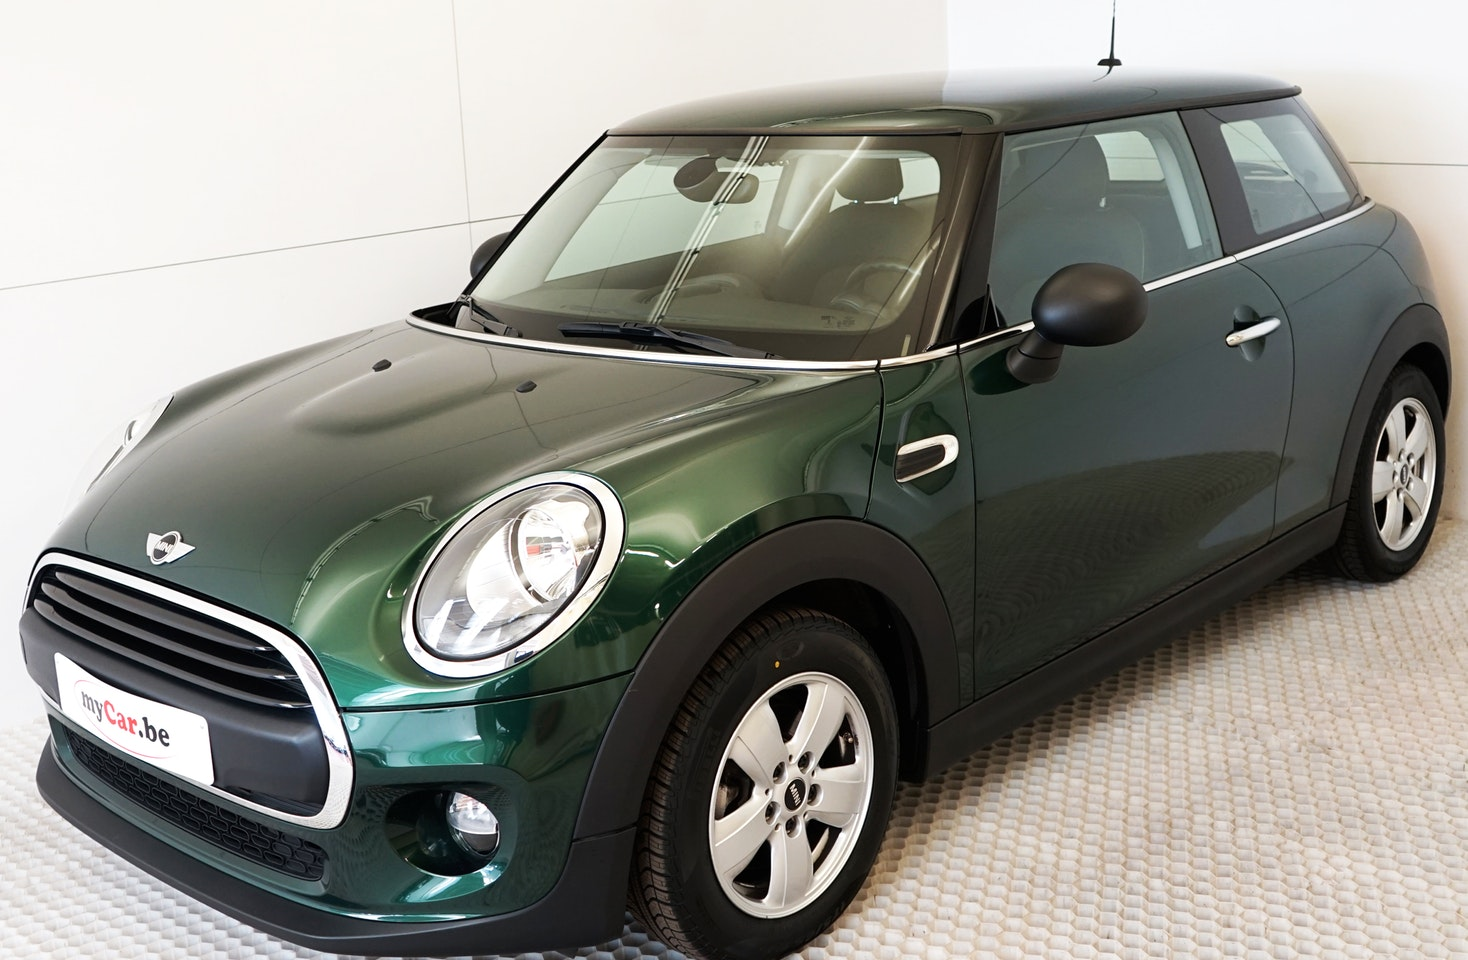 mycar-braine-lalleud-voitures-occasion-mini-cooper-one-first-3